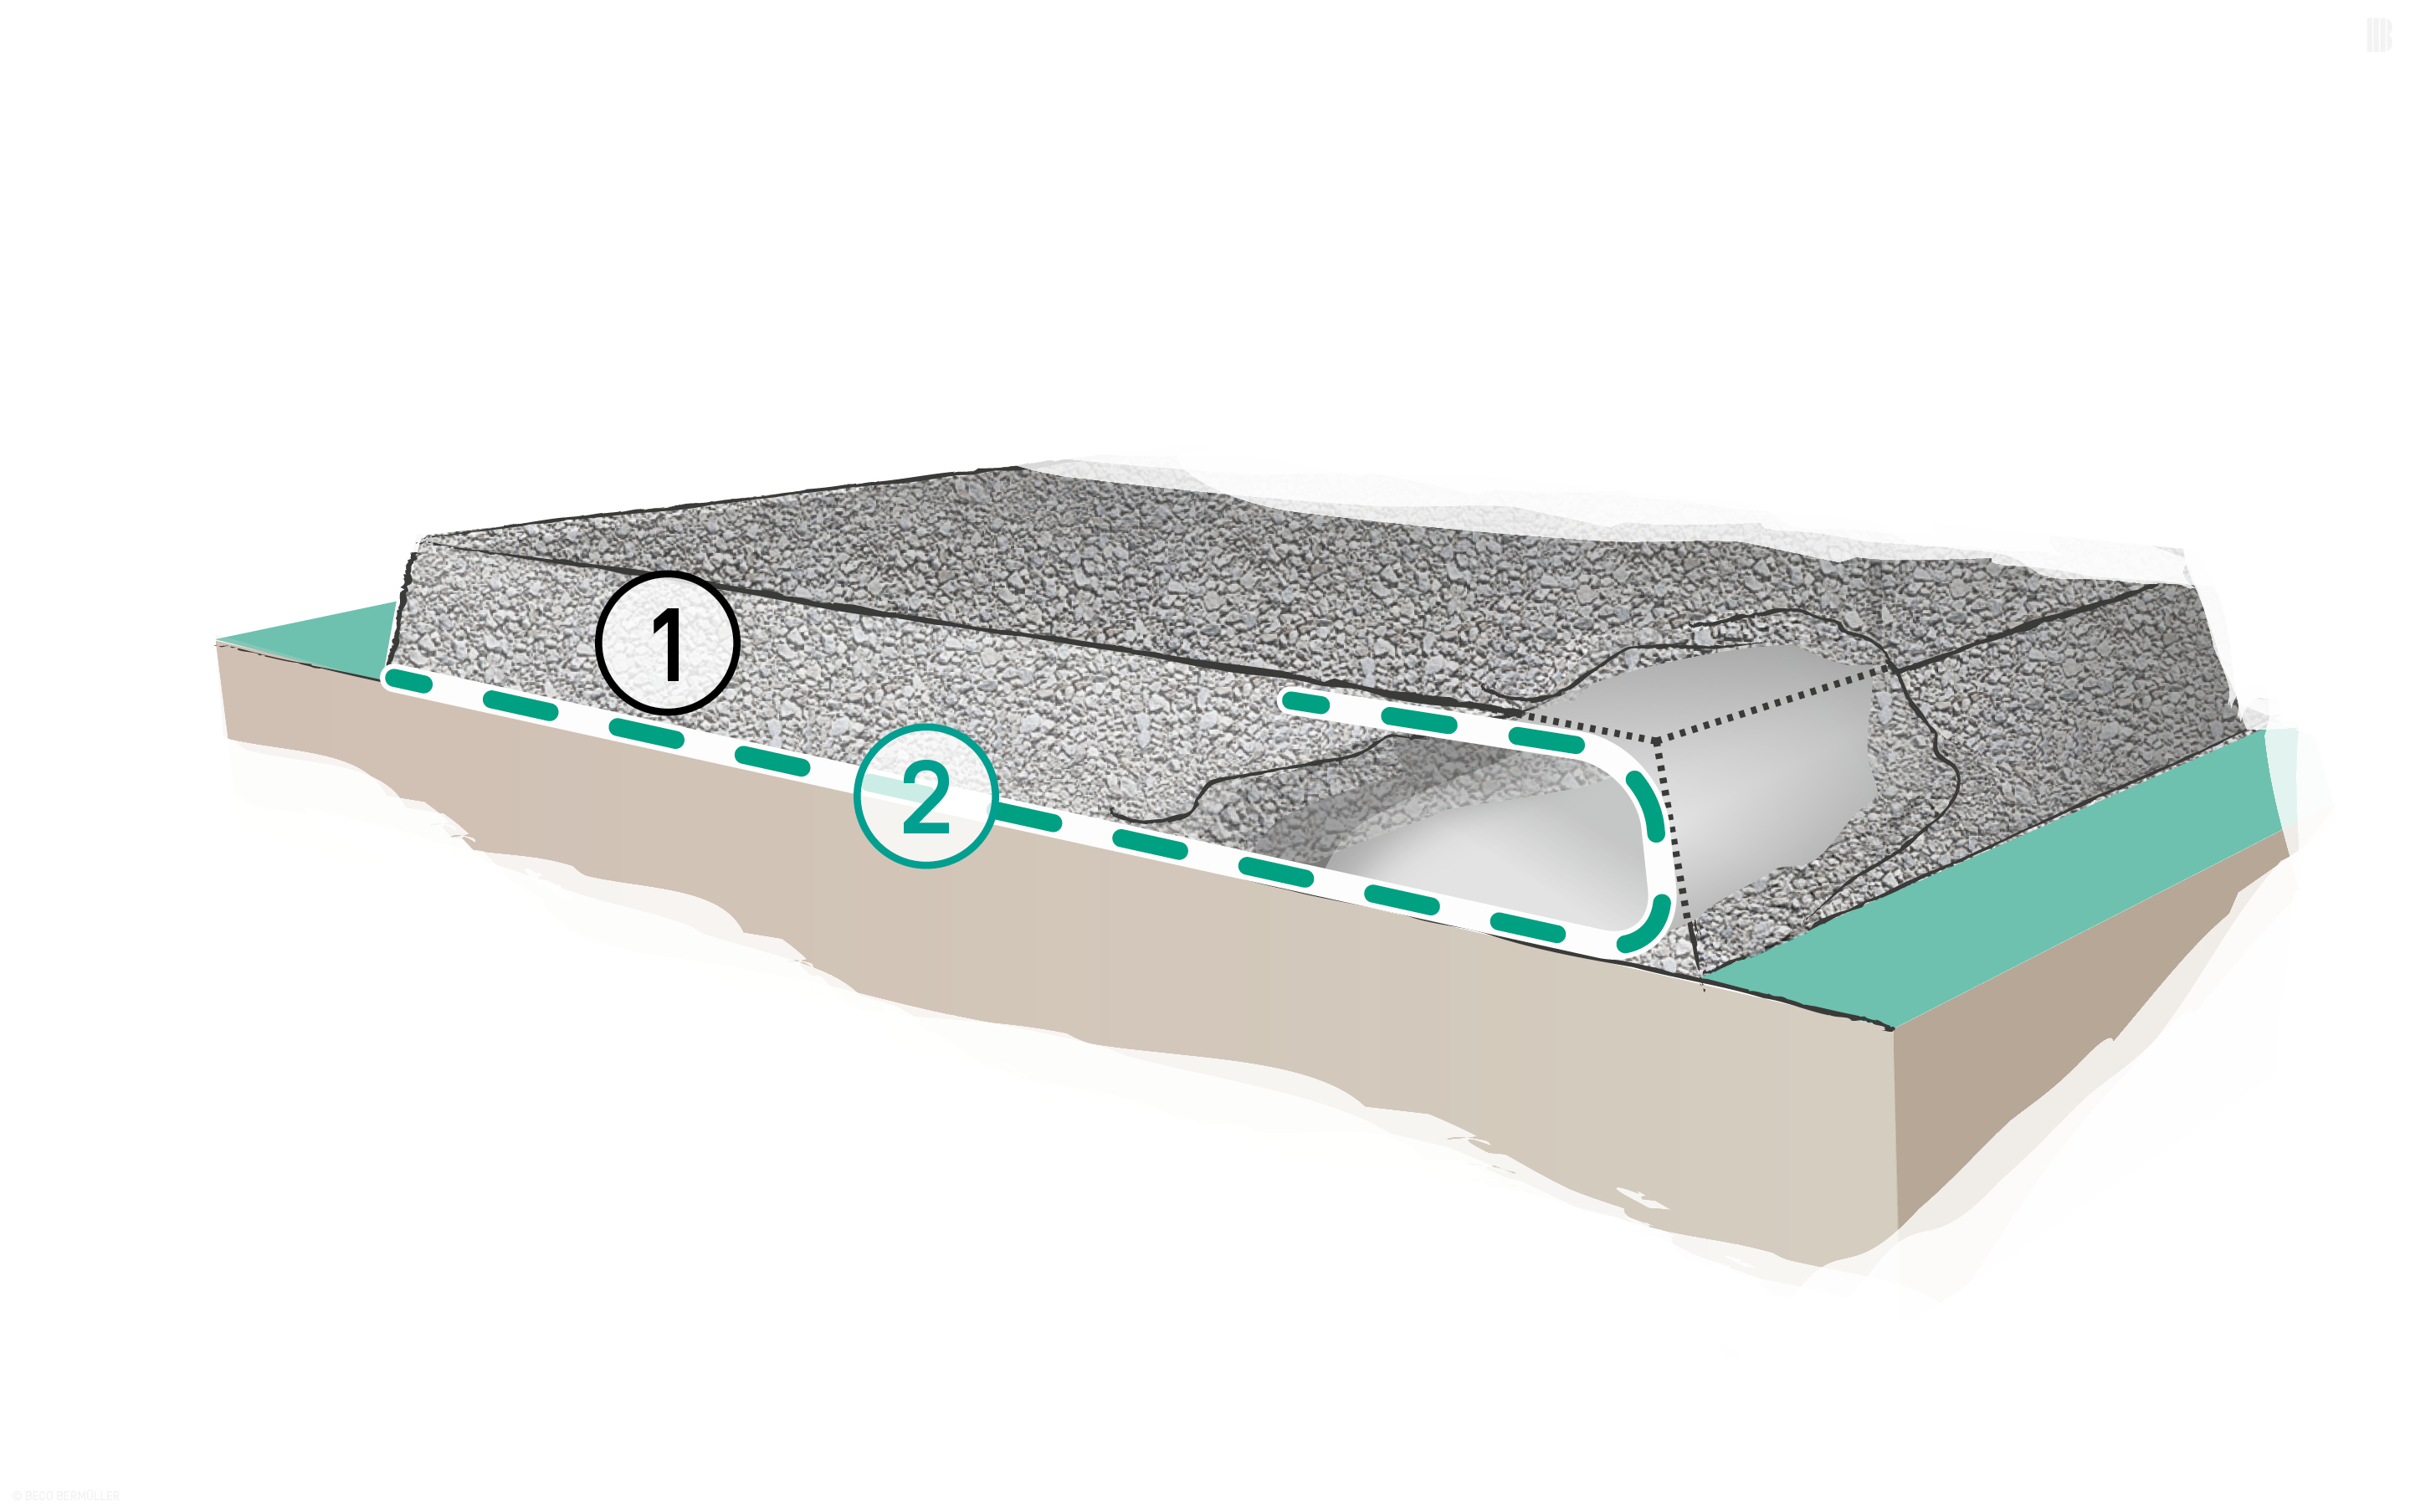 Separation layer under bound and unbound traffic routes: 1. Unbound upper construction layers | 2. BONTEC NW Non-woven Fabric